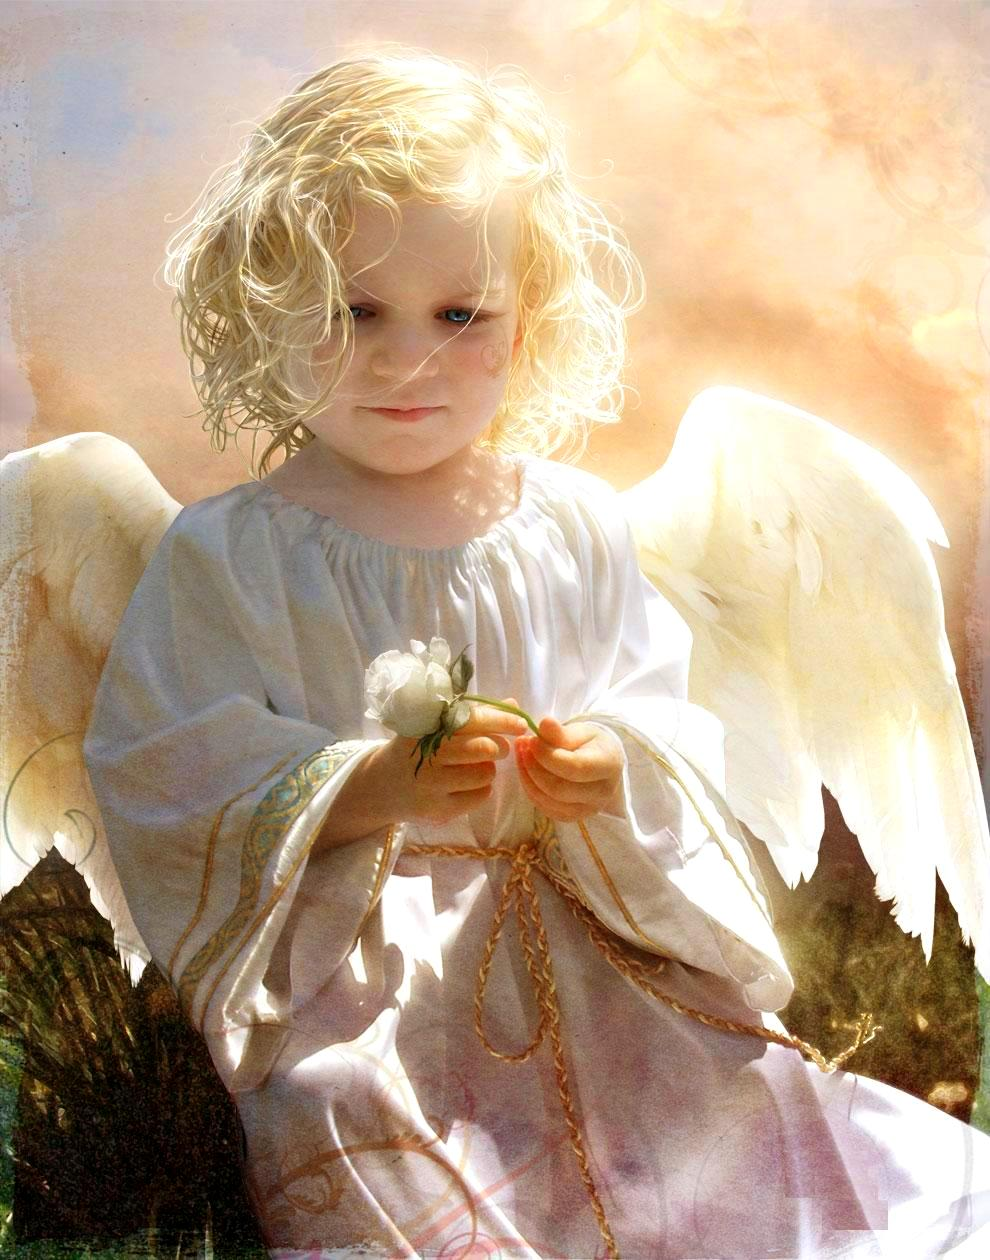 Gentle Angels Ukrainian Sets Many Stories About